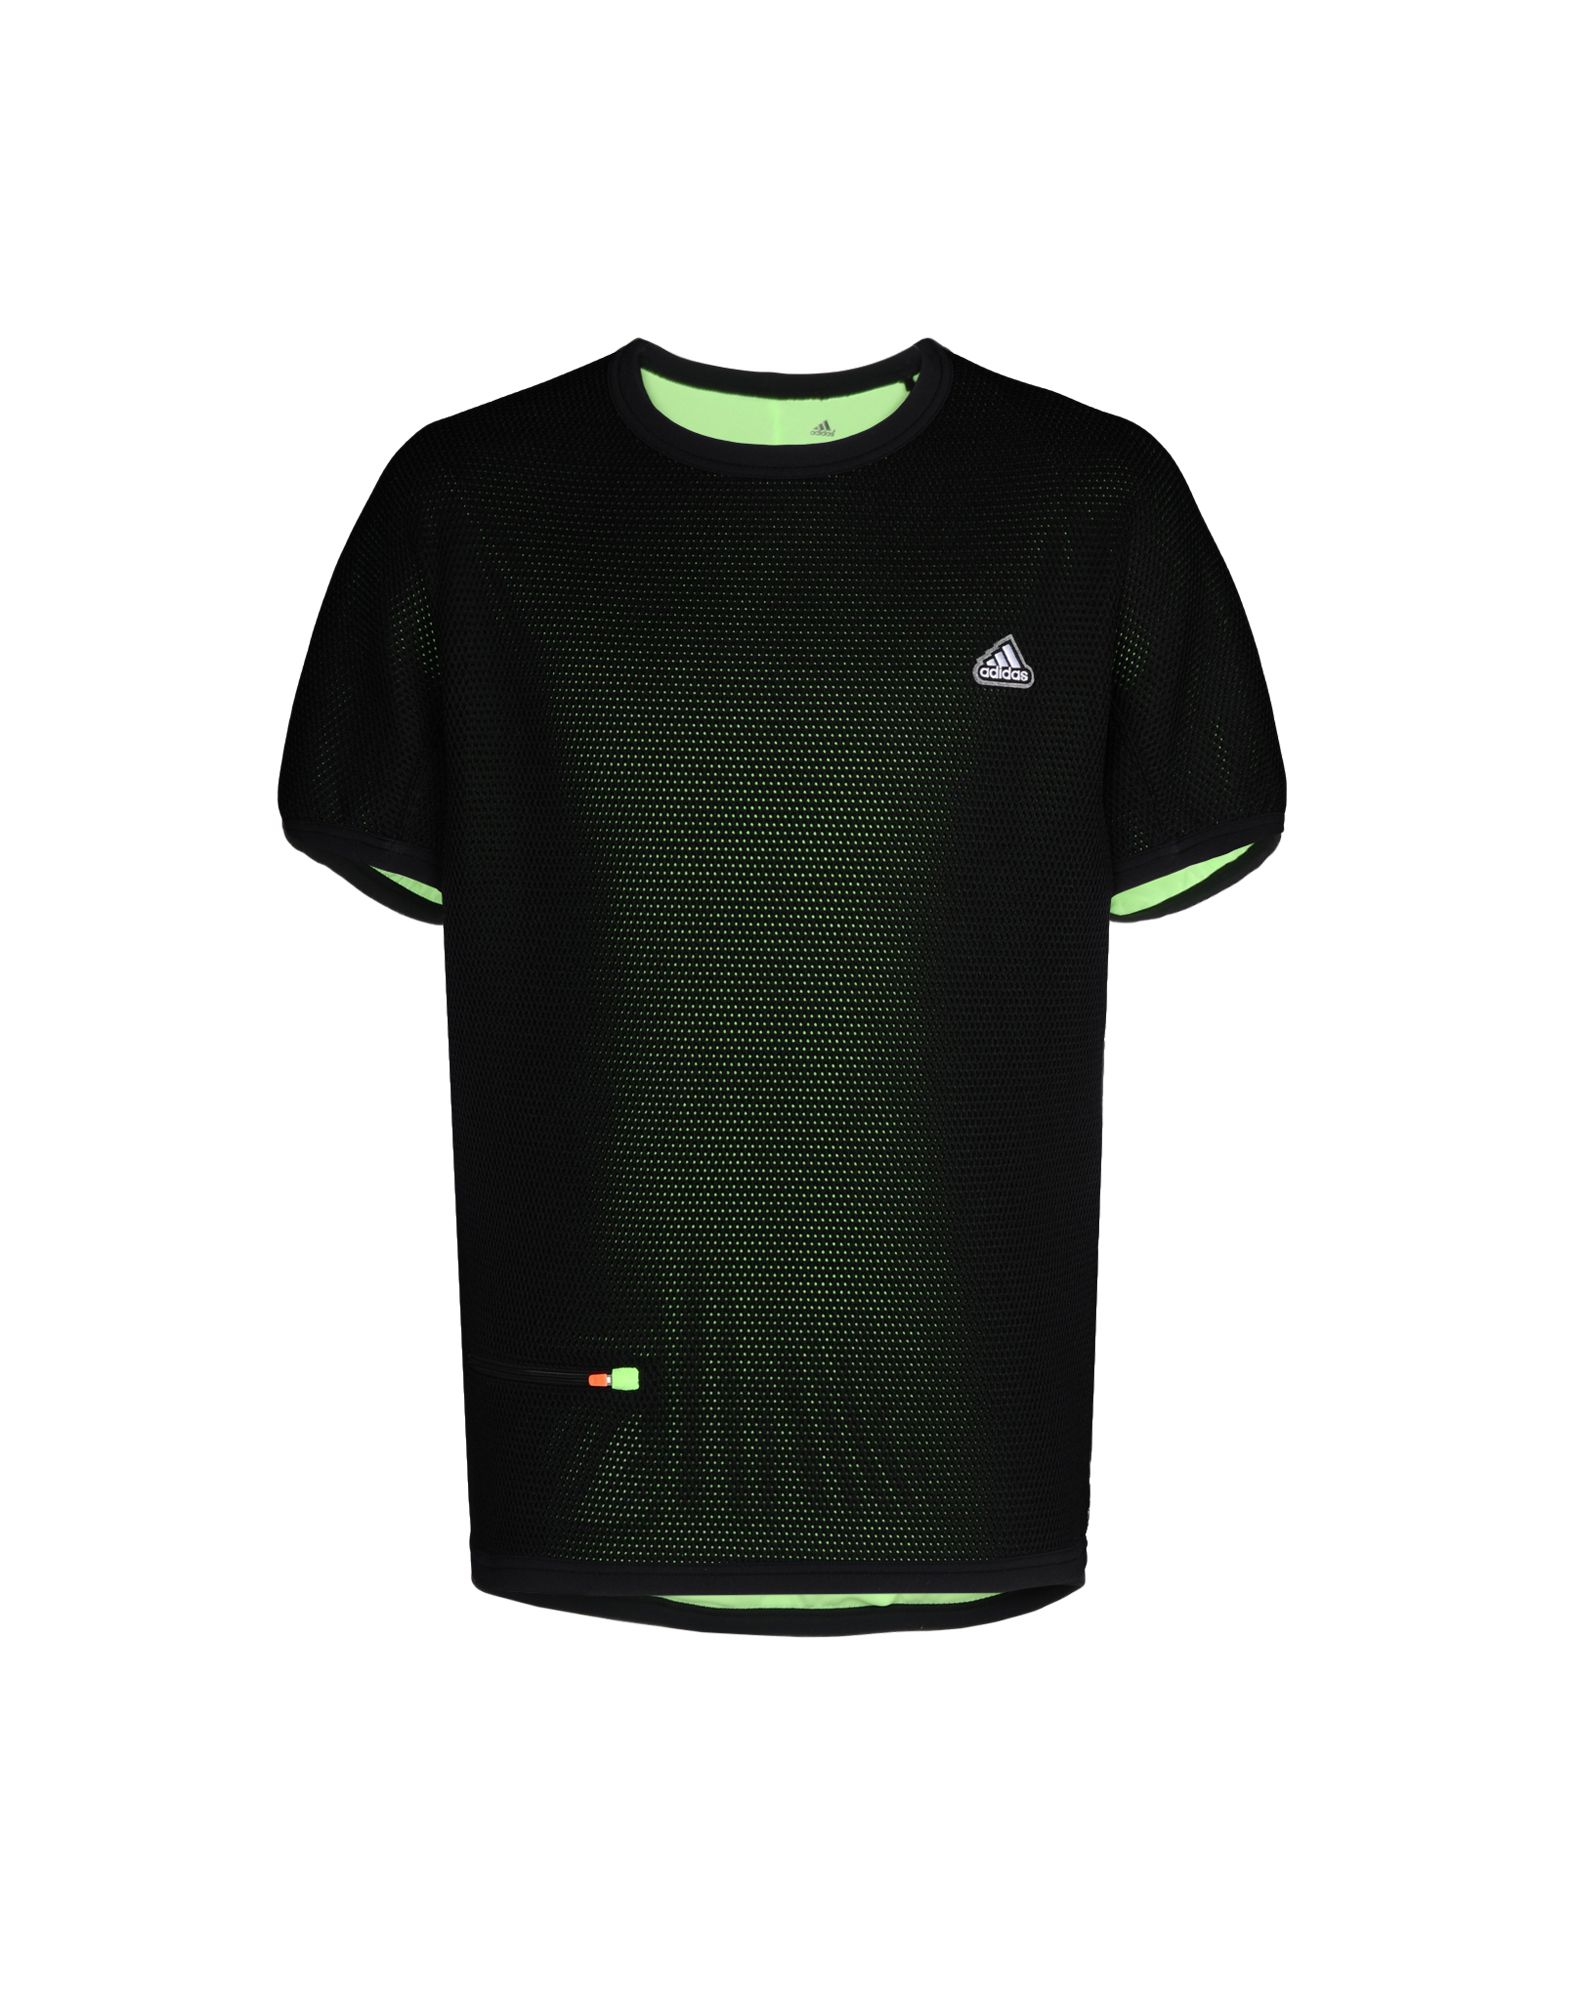 factory authentic cff7f f72c8 ... KOLOR adidas by kolor CLIMACHILL TEE Short sleeve t-shirt Man f ...